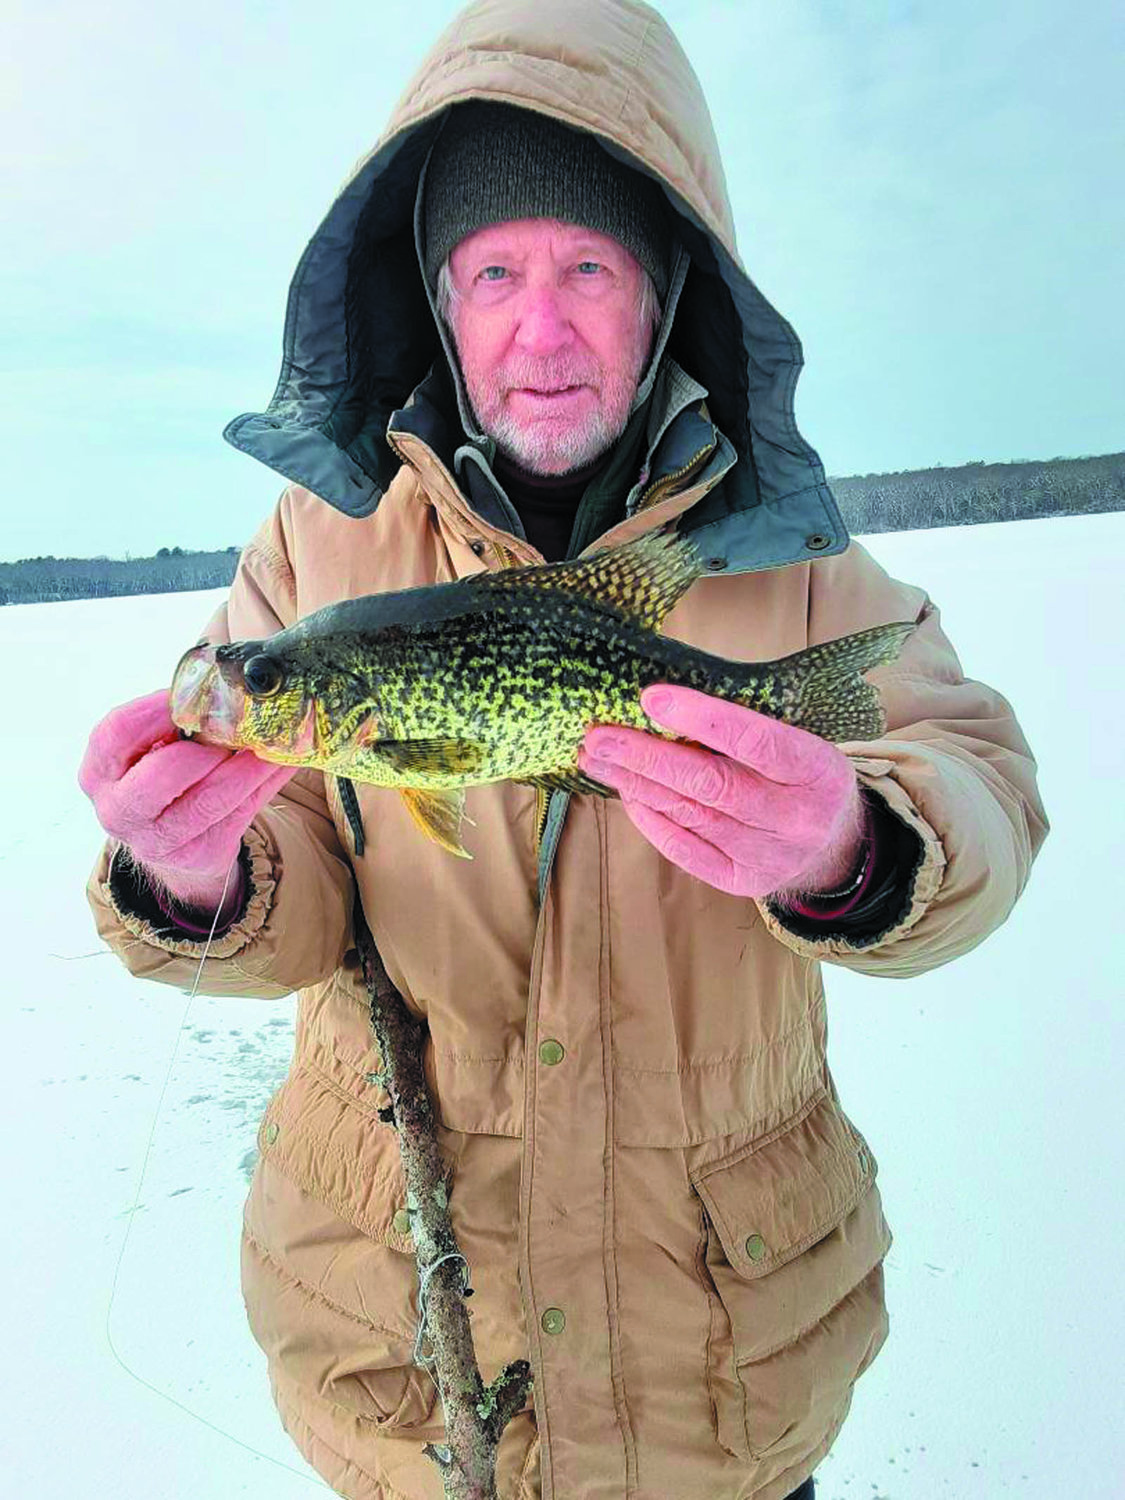 ICE FISHING GOOD: Anglers are catching pickerel, perch and crappie like this 14-inch crappie caught on a South County Pond by Gil Bell. Check safe ice conditions with local authorities.